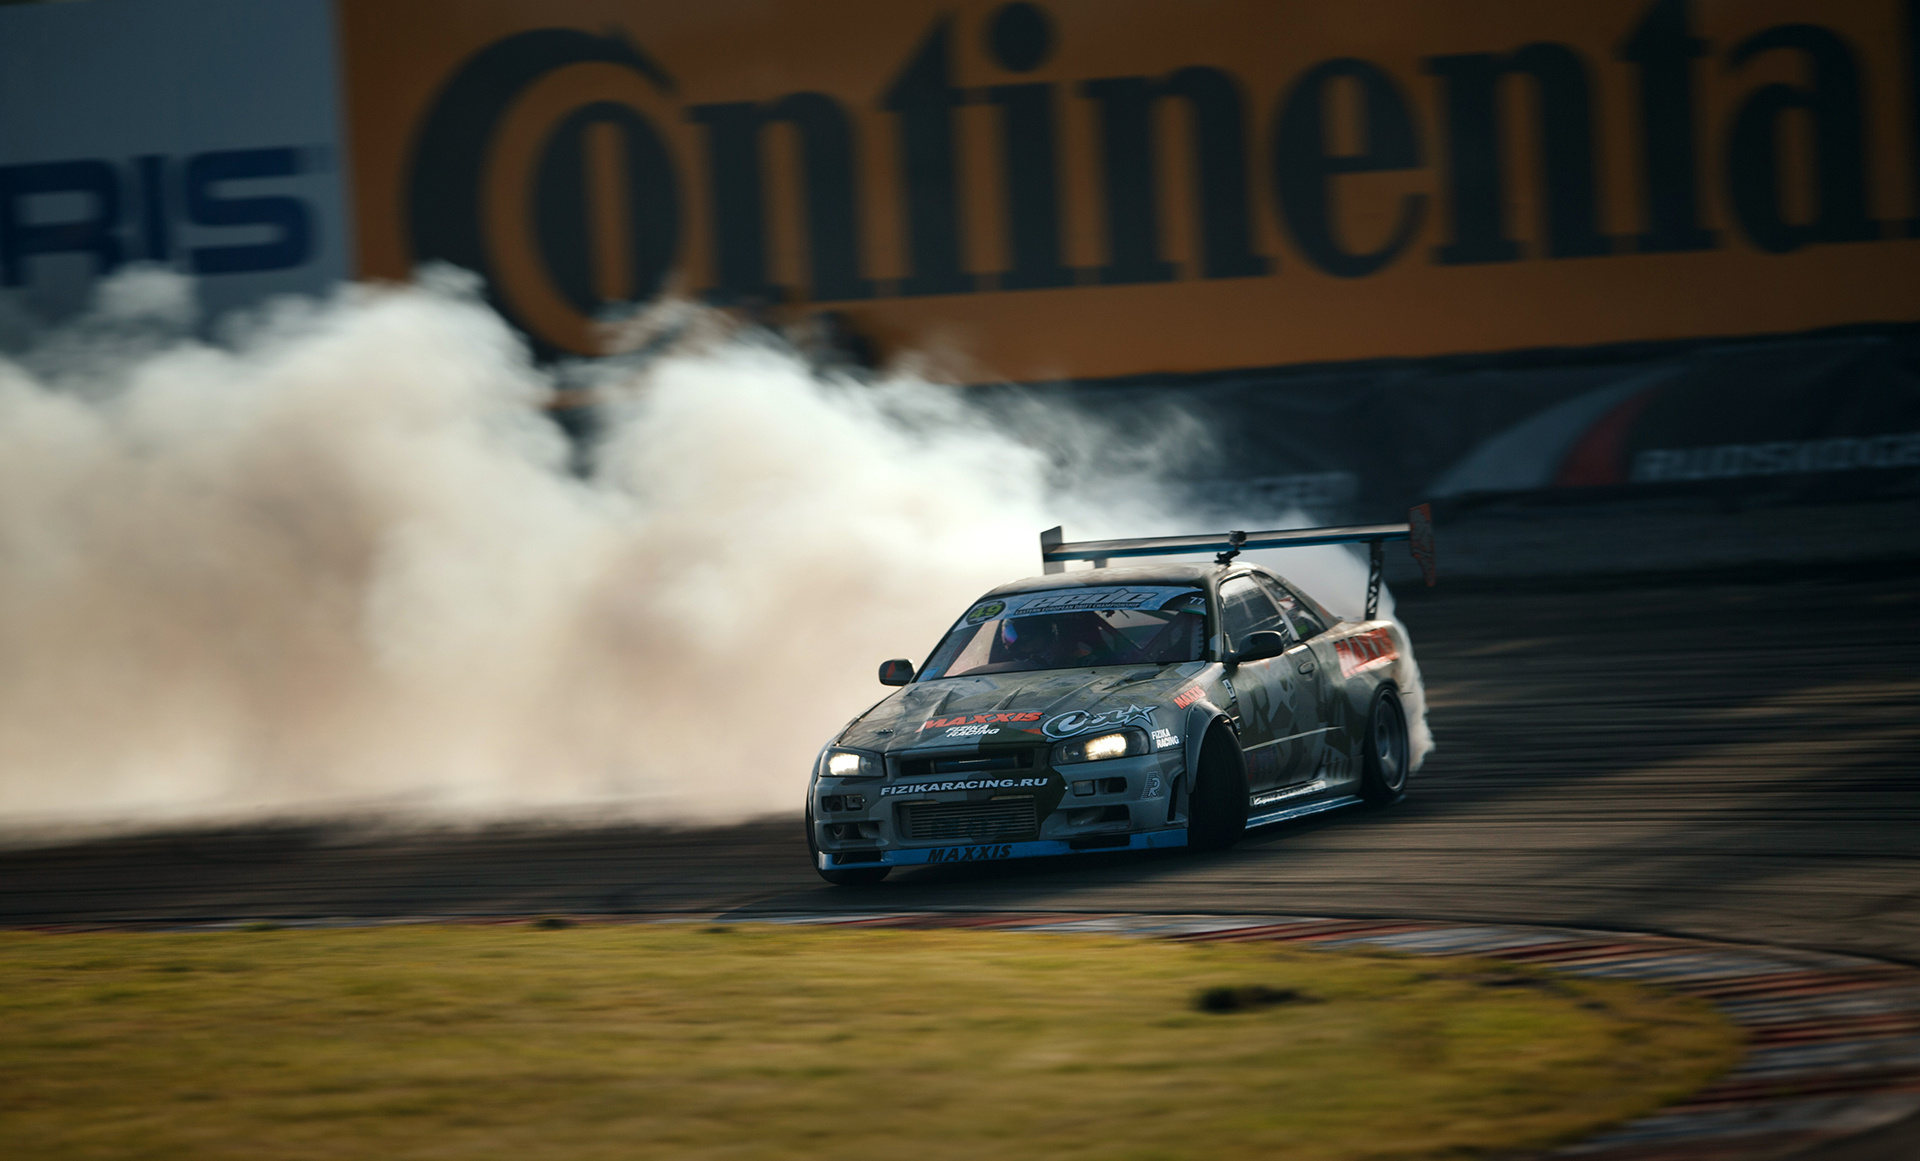 64698 download wallpaper Nissan, Cars, Drift, Gtr, Skyline, R34 screensavers and pictures for free